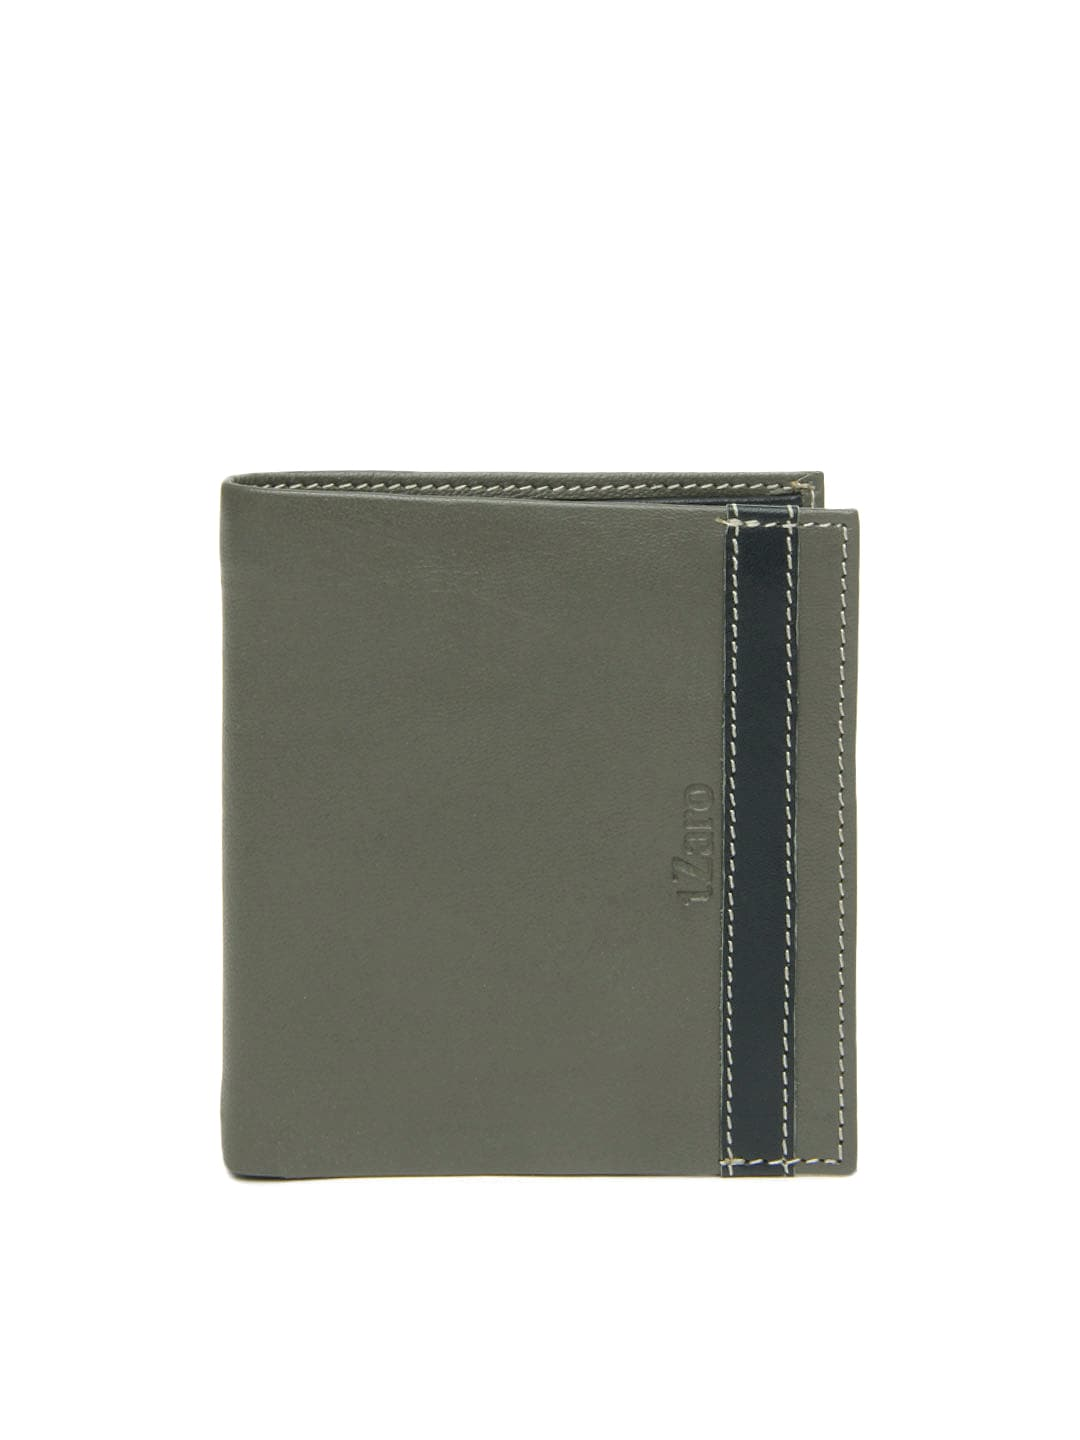 tZaro Men Grey Leather Wallet